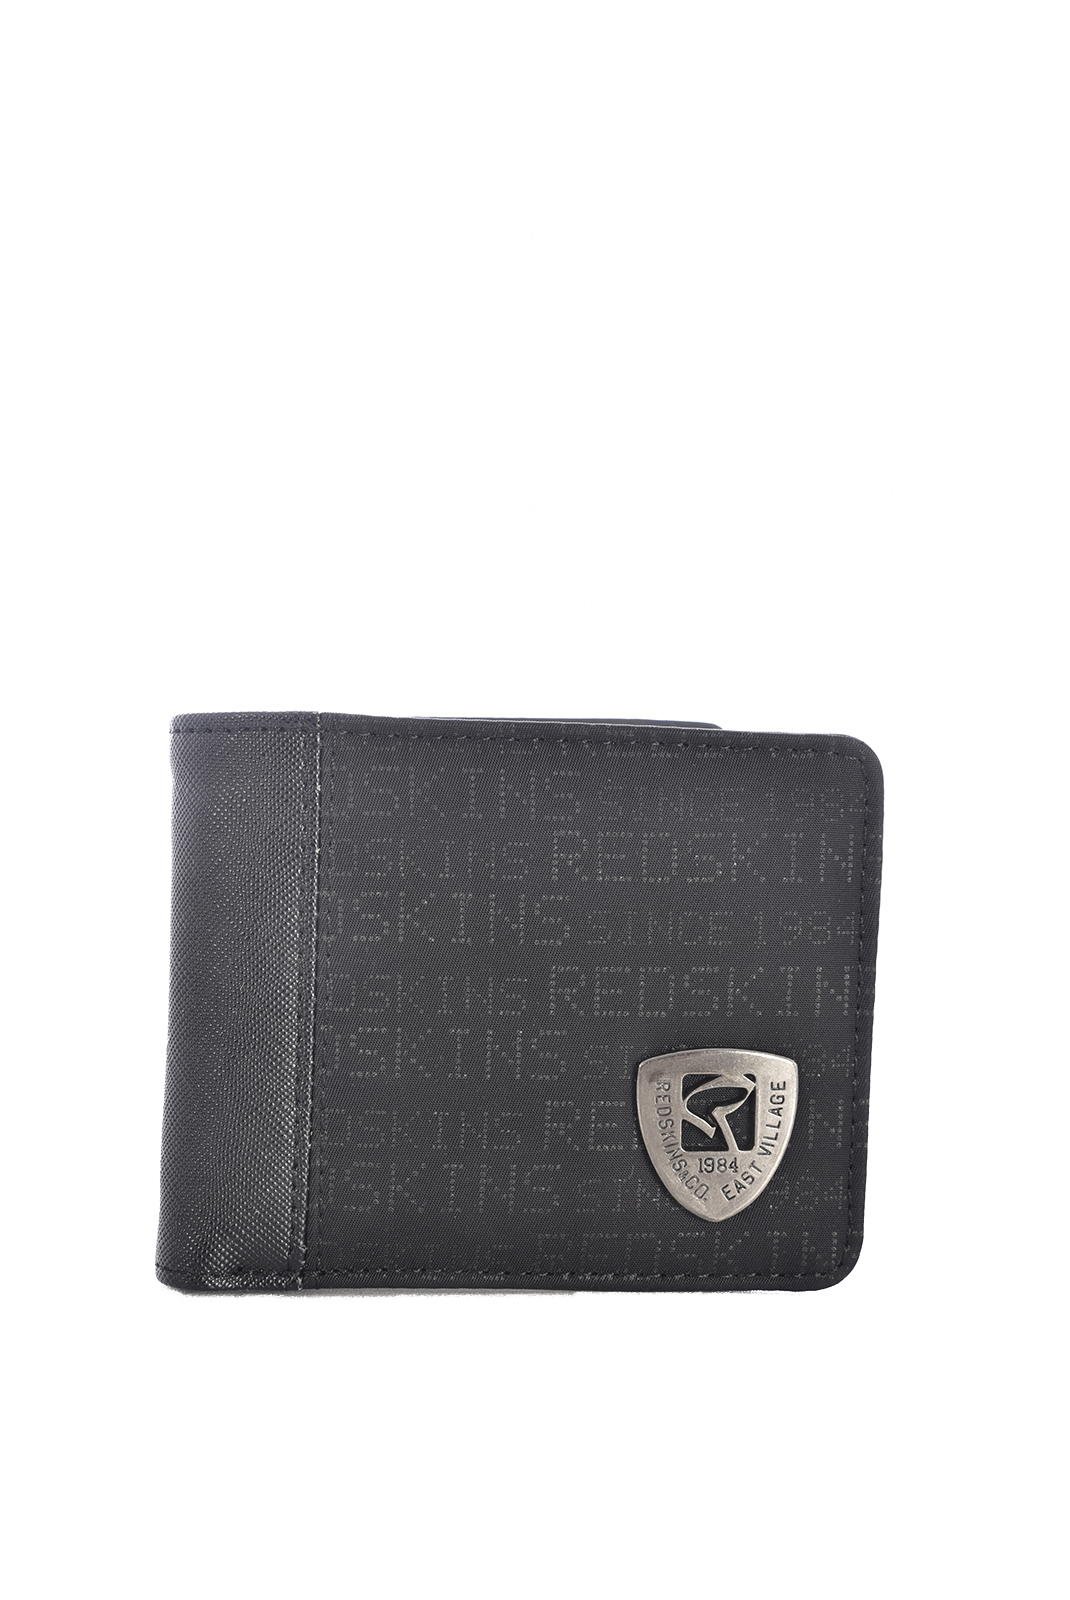 REDSKINS PORTEFEUILLE FIXED NOIR HOMME